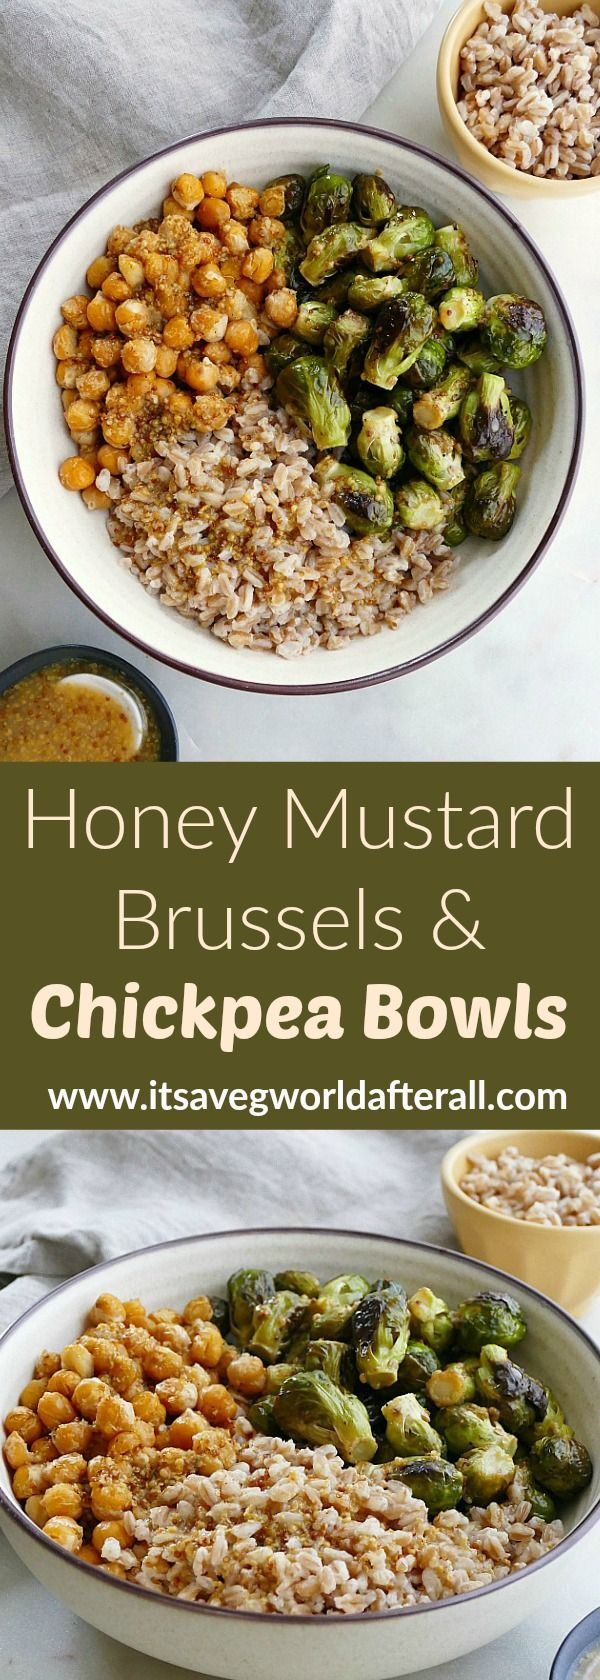 Honey Mustard Brussels Sprouts and Chickpea Bowls - It's a Veg World After All